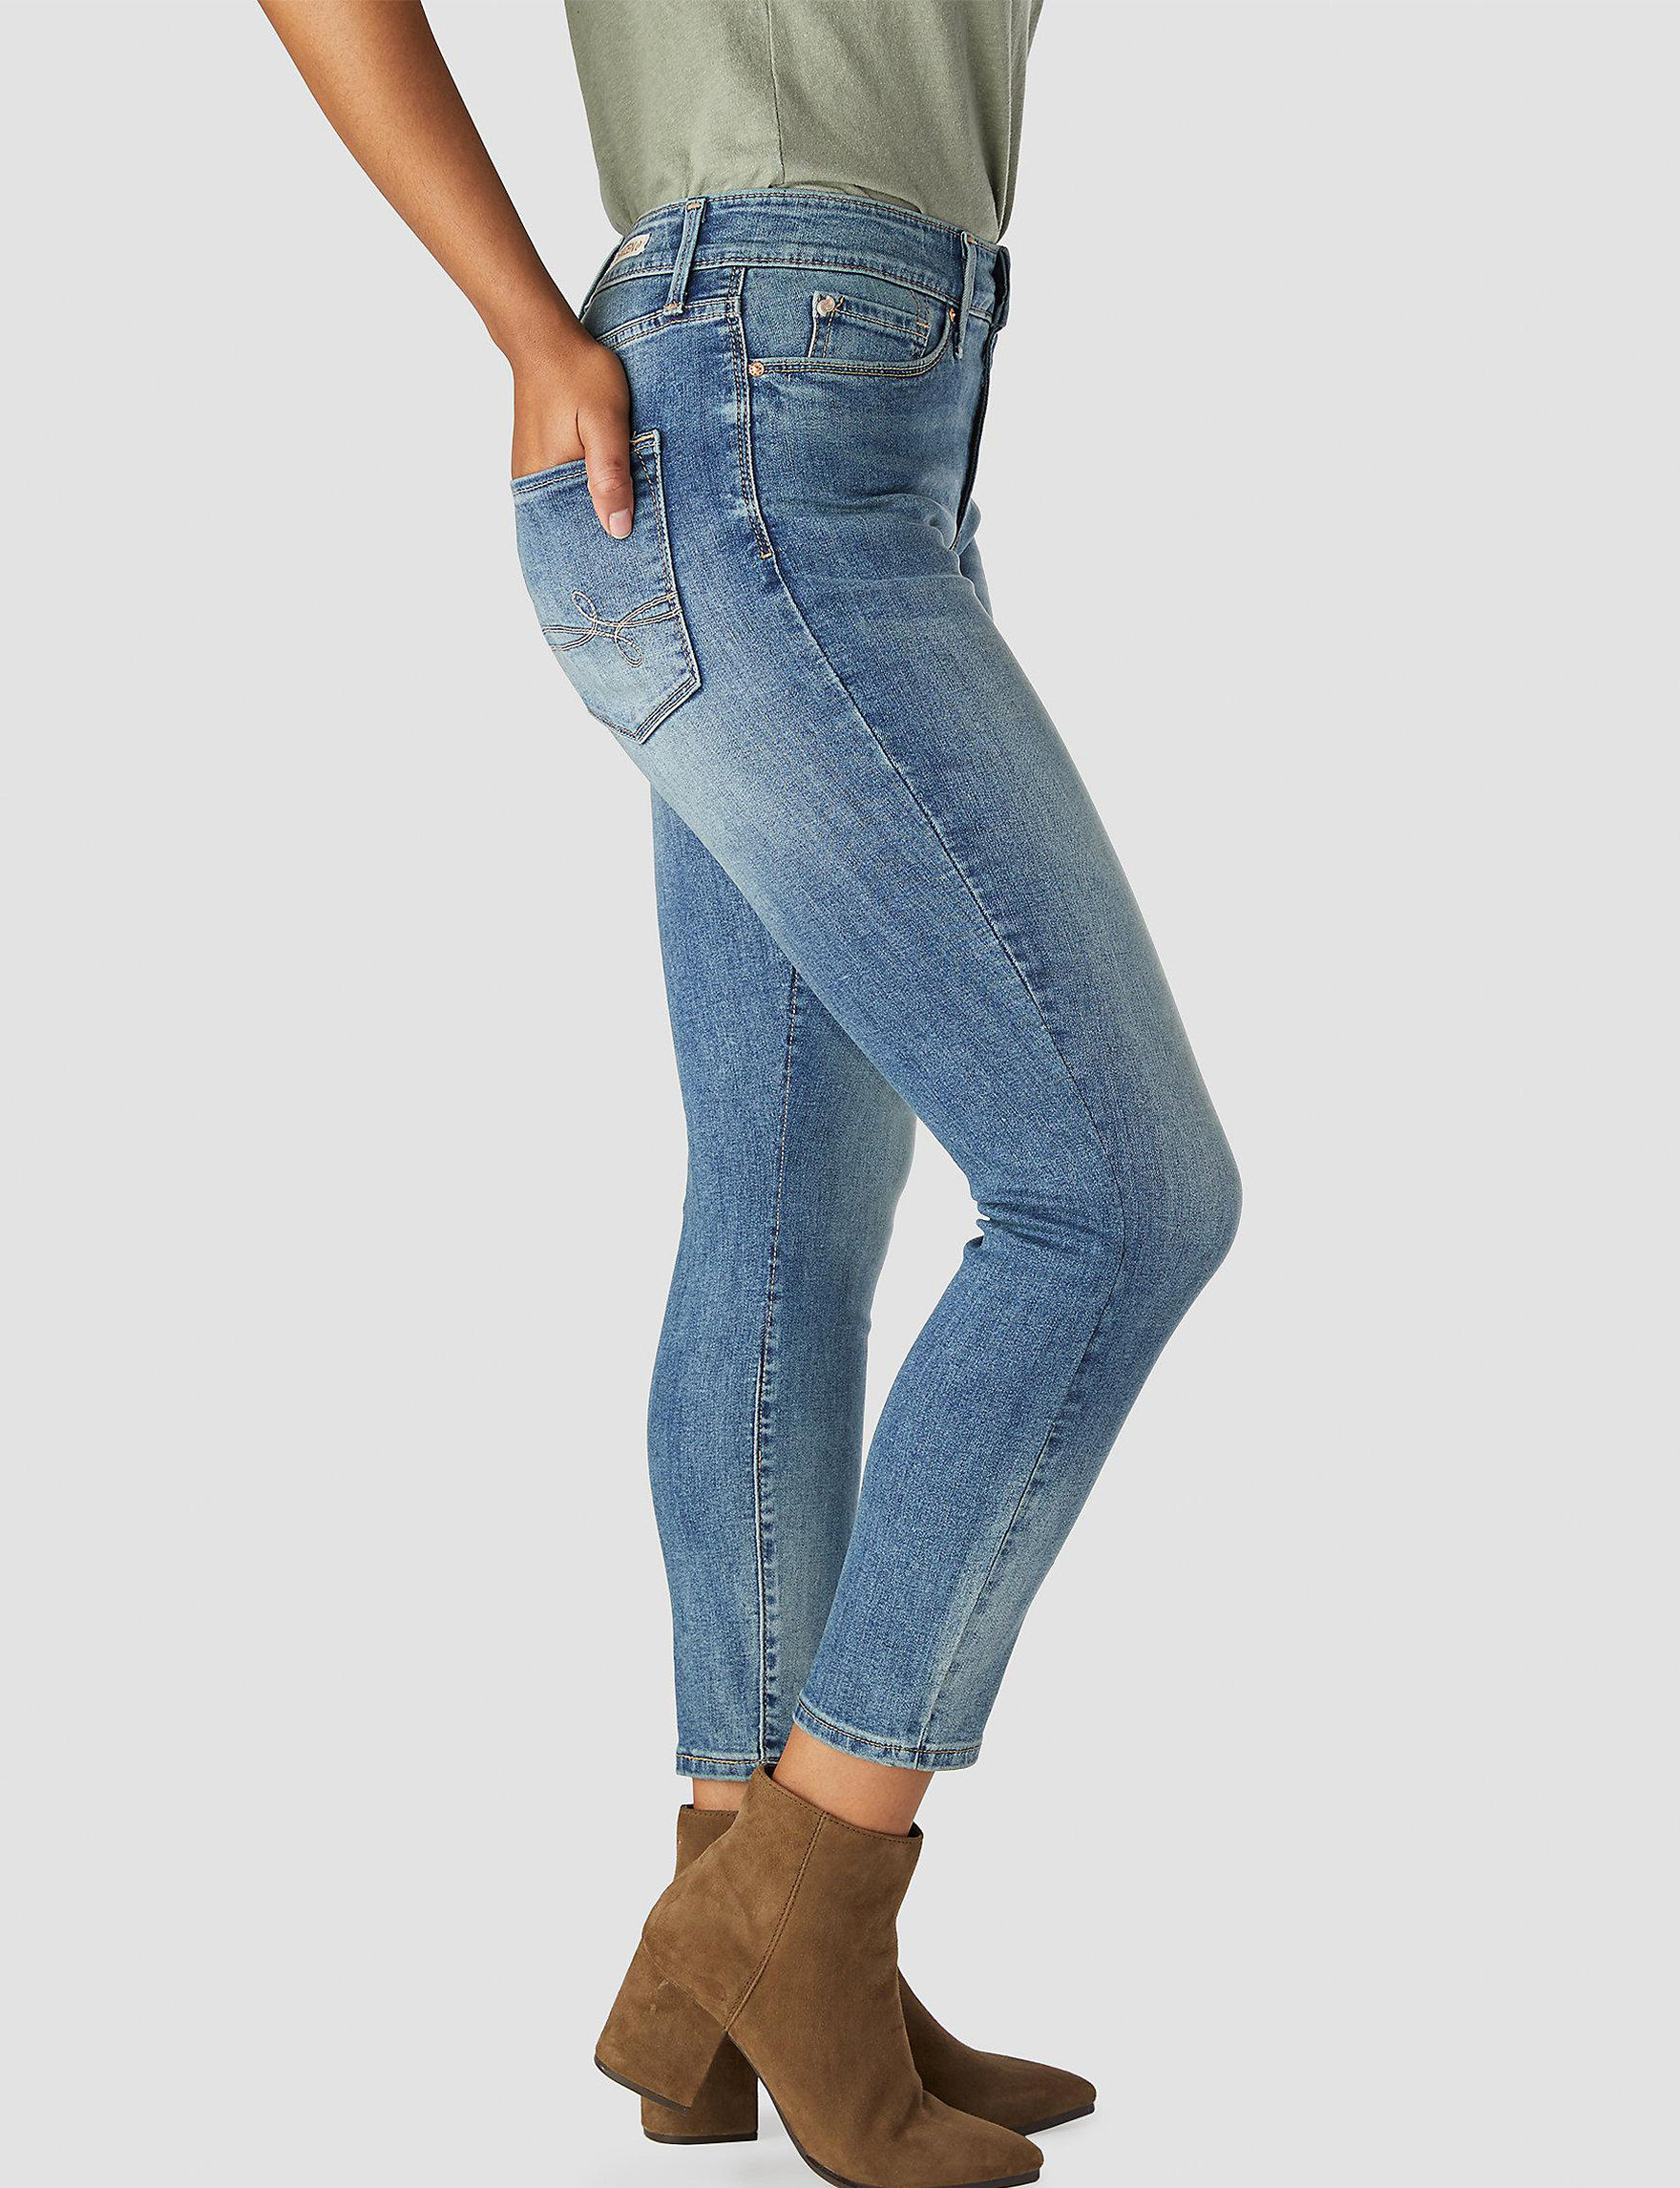 e193351ae132b Denizen from Levi s High Rise Ankle Skinny Jeans